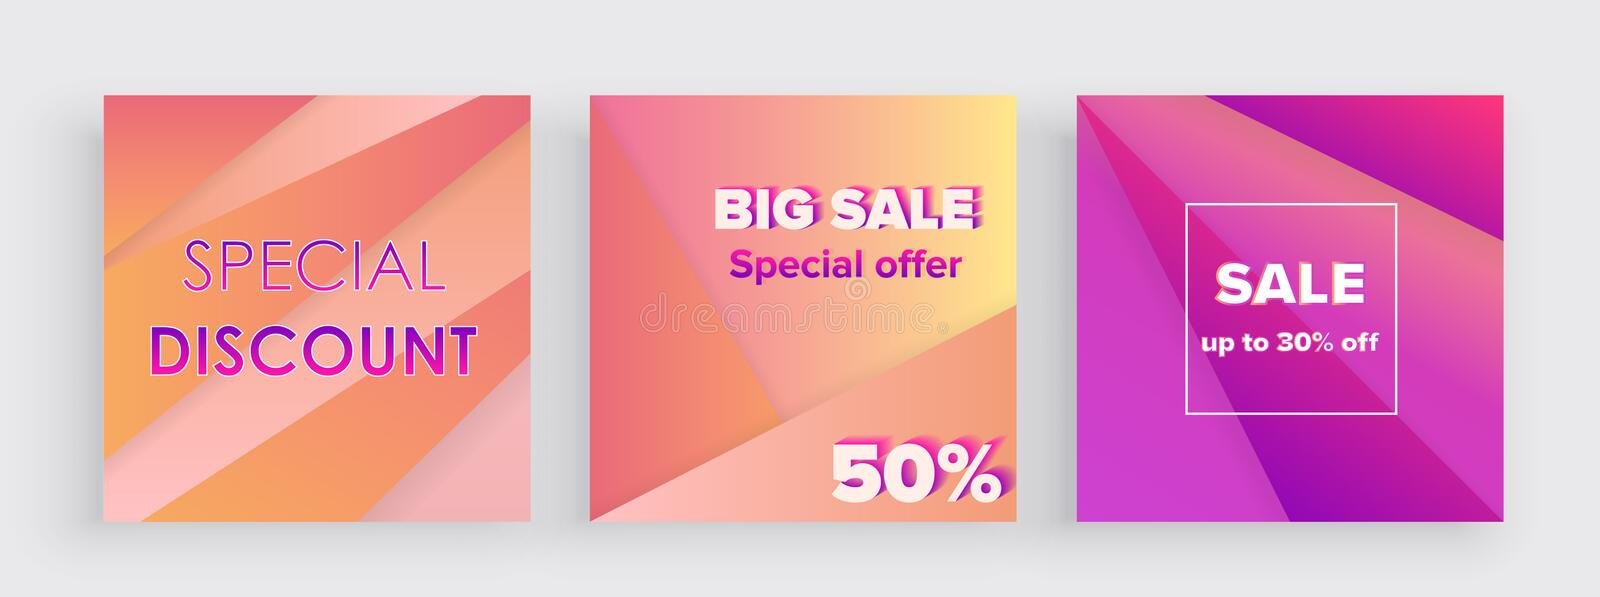 Set of colorful gradient trendy sale banner background template. Cover design Big Sale and Special Offer stock illustration